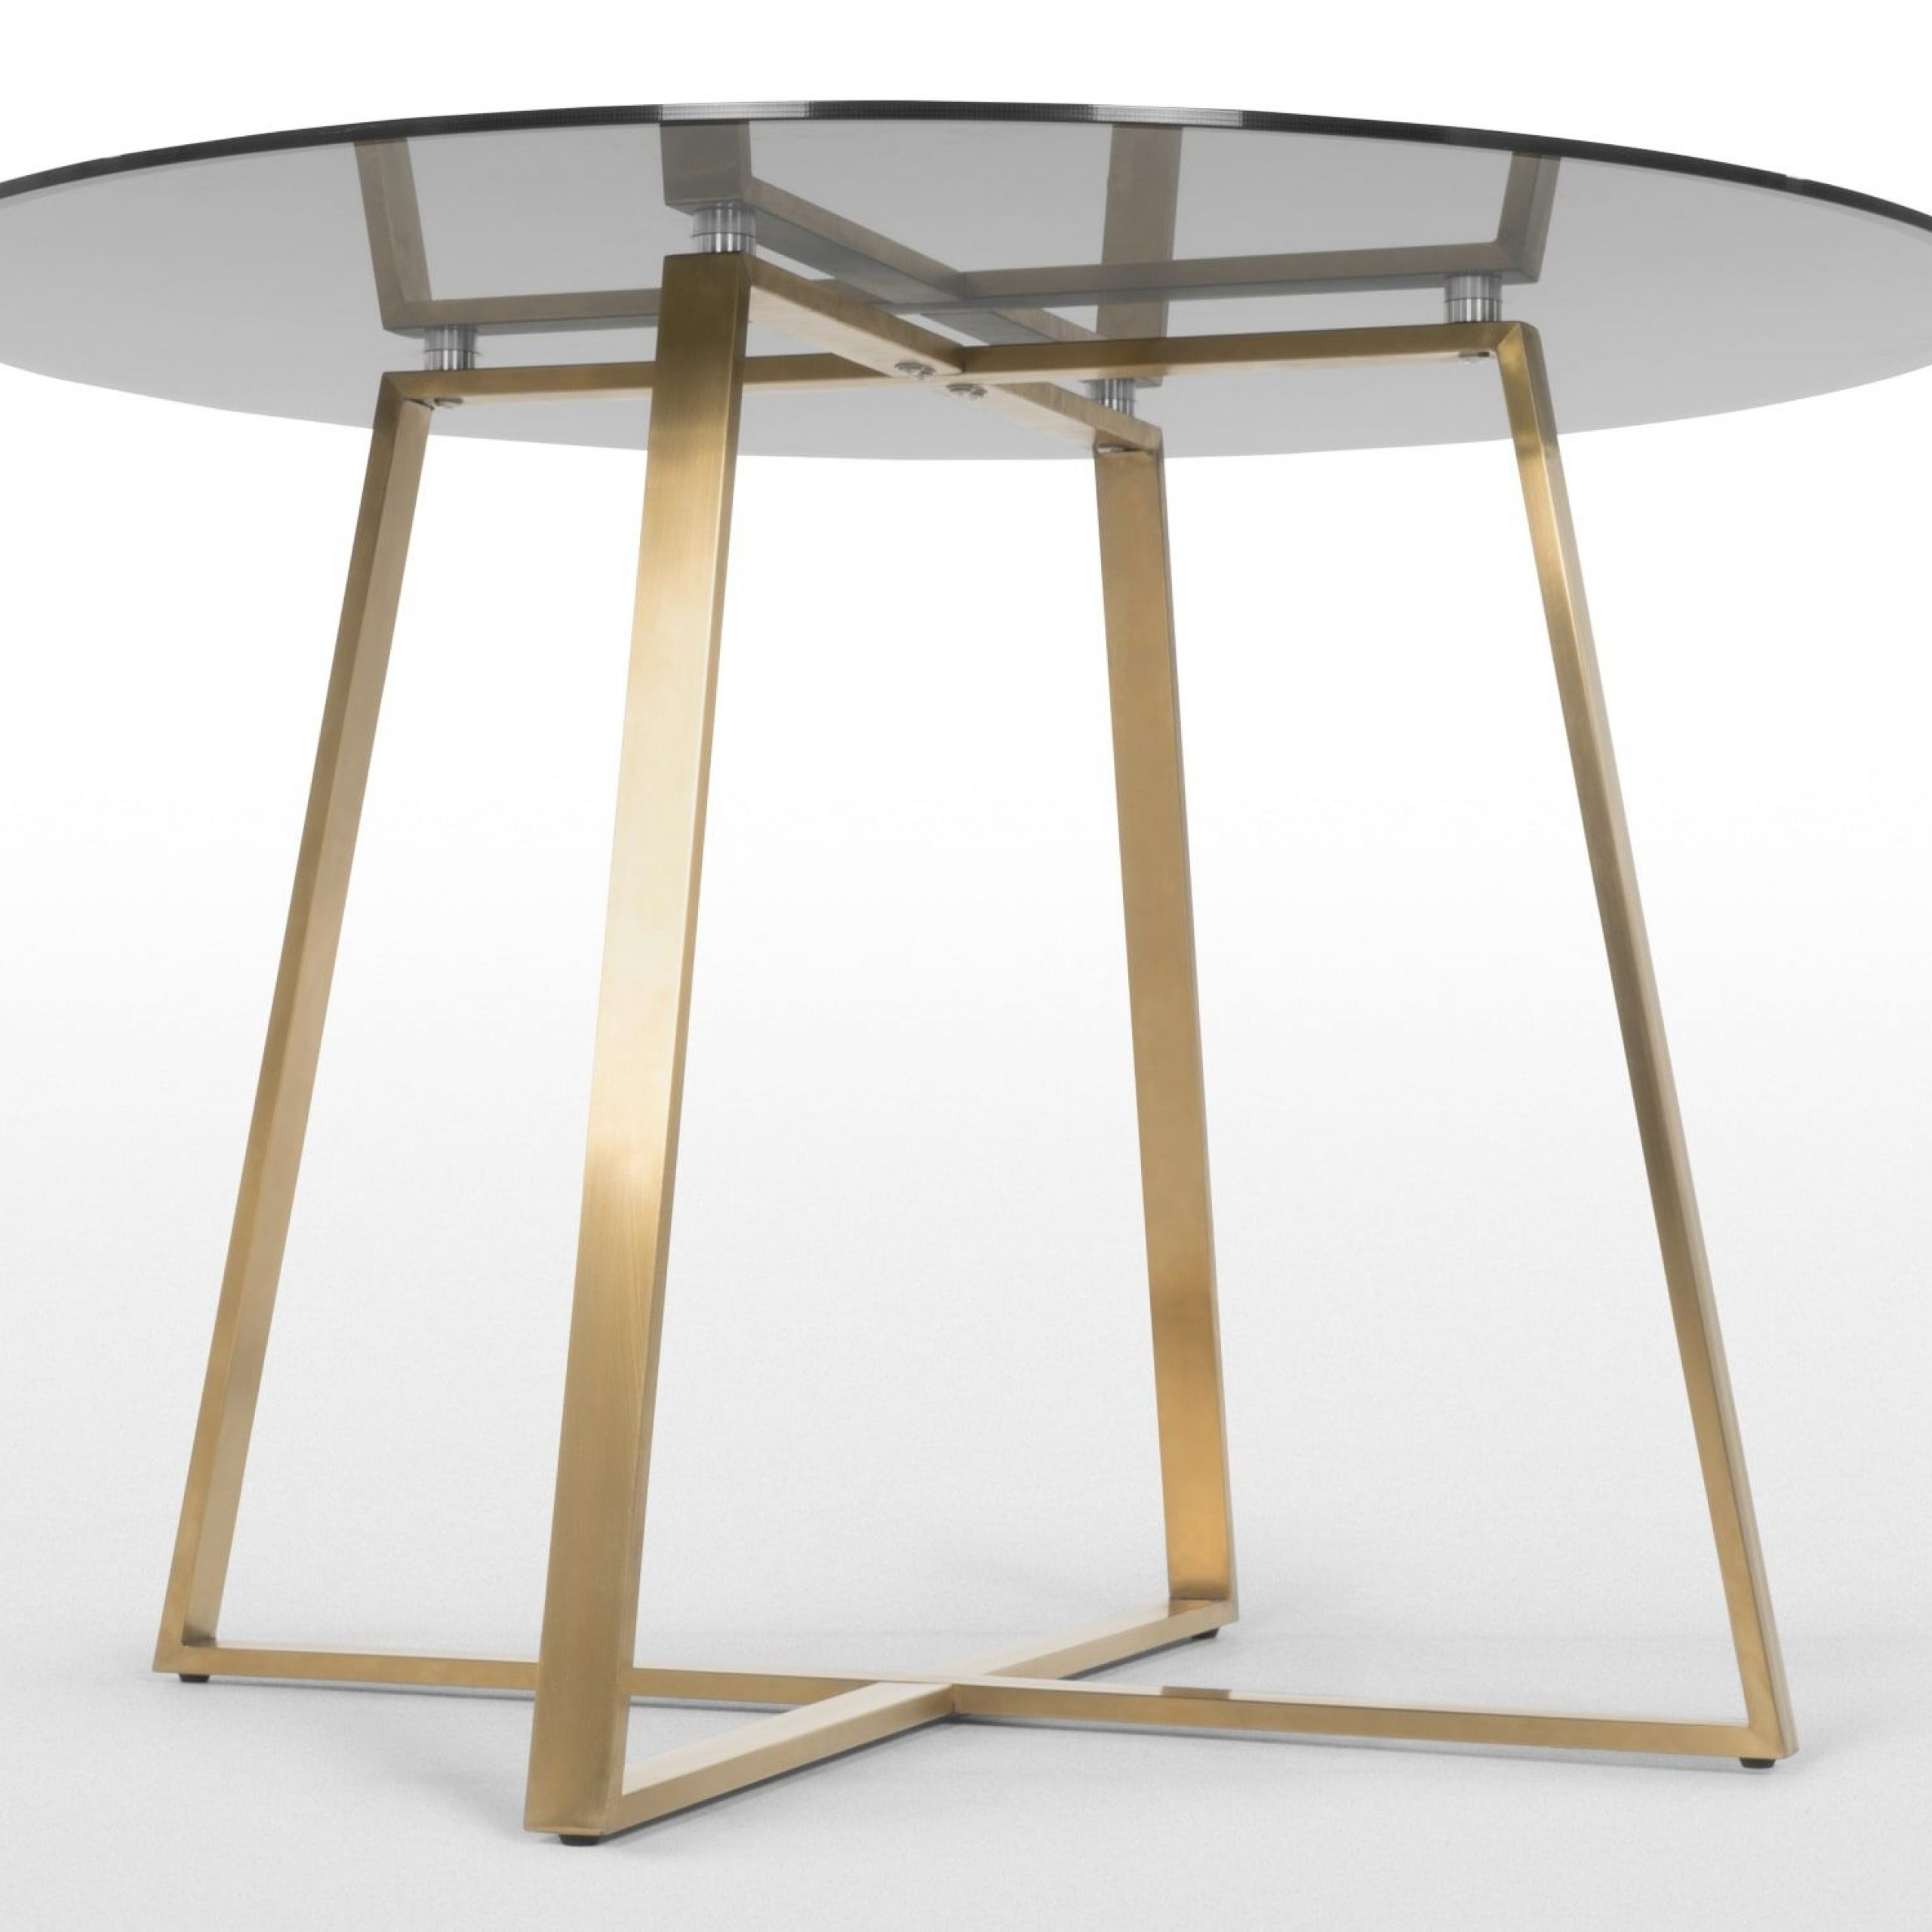 Trendy Montalvo Round Dining Tables With Regard To Haku 4 Seat Round Large Dining Table, Brass And Smoked Glass (View 11 of 25)